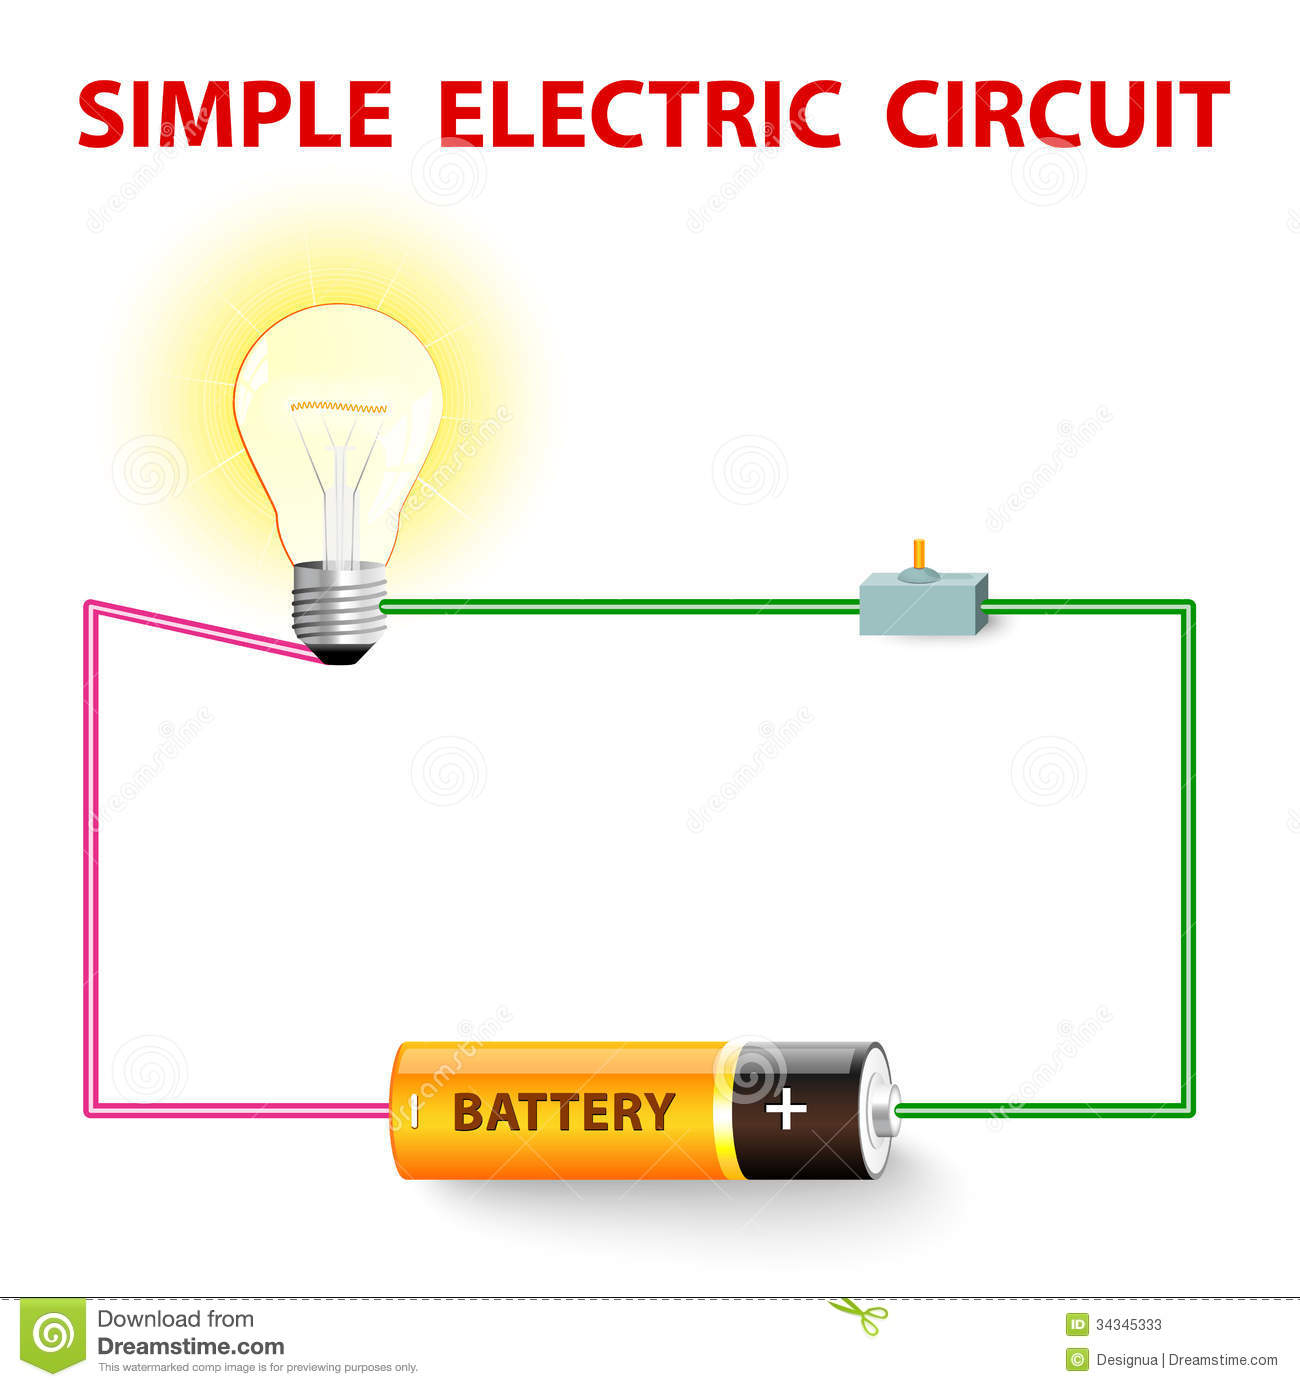 Circuit Diagram Symbols Light Bulb Simple Digital Switching Electronic Diagrams Wire Wiring Schematics